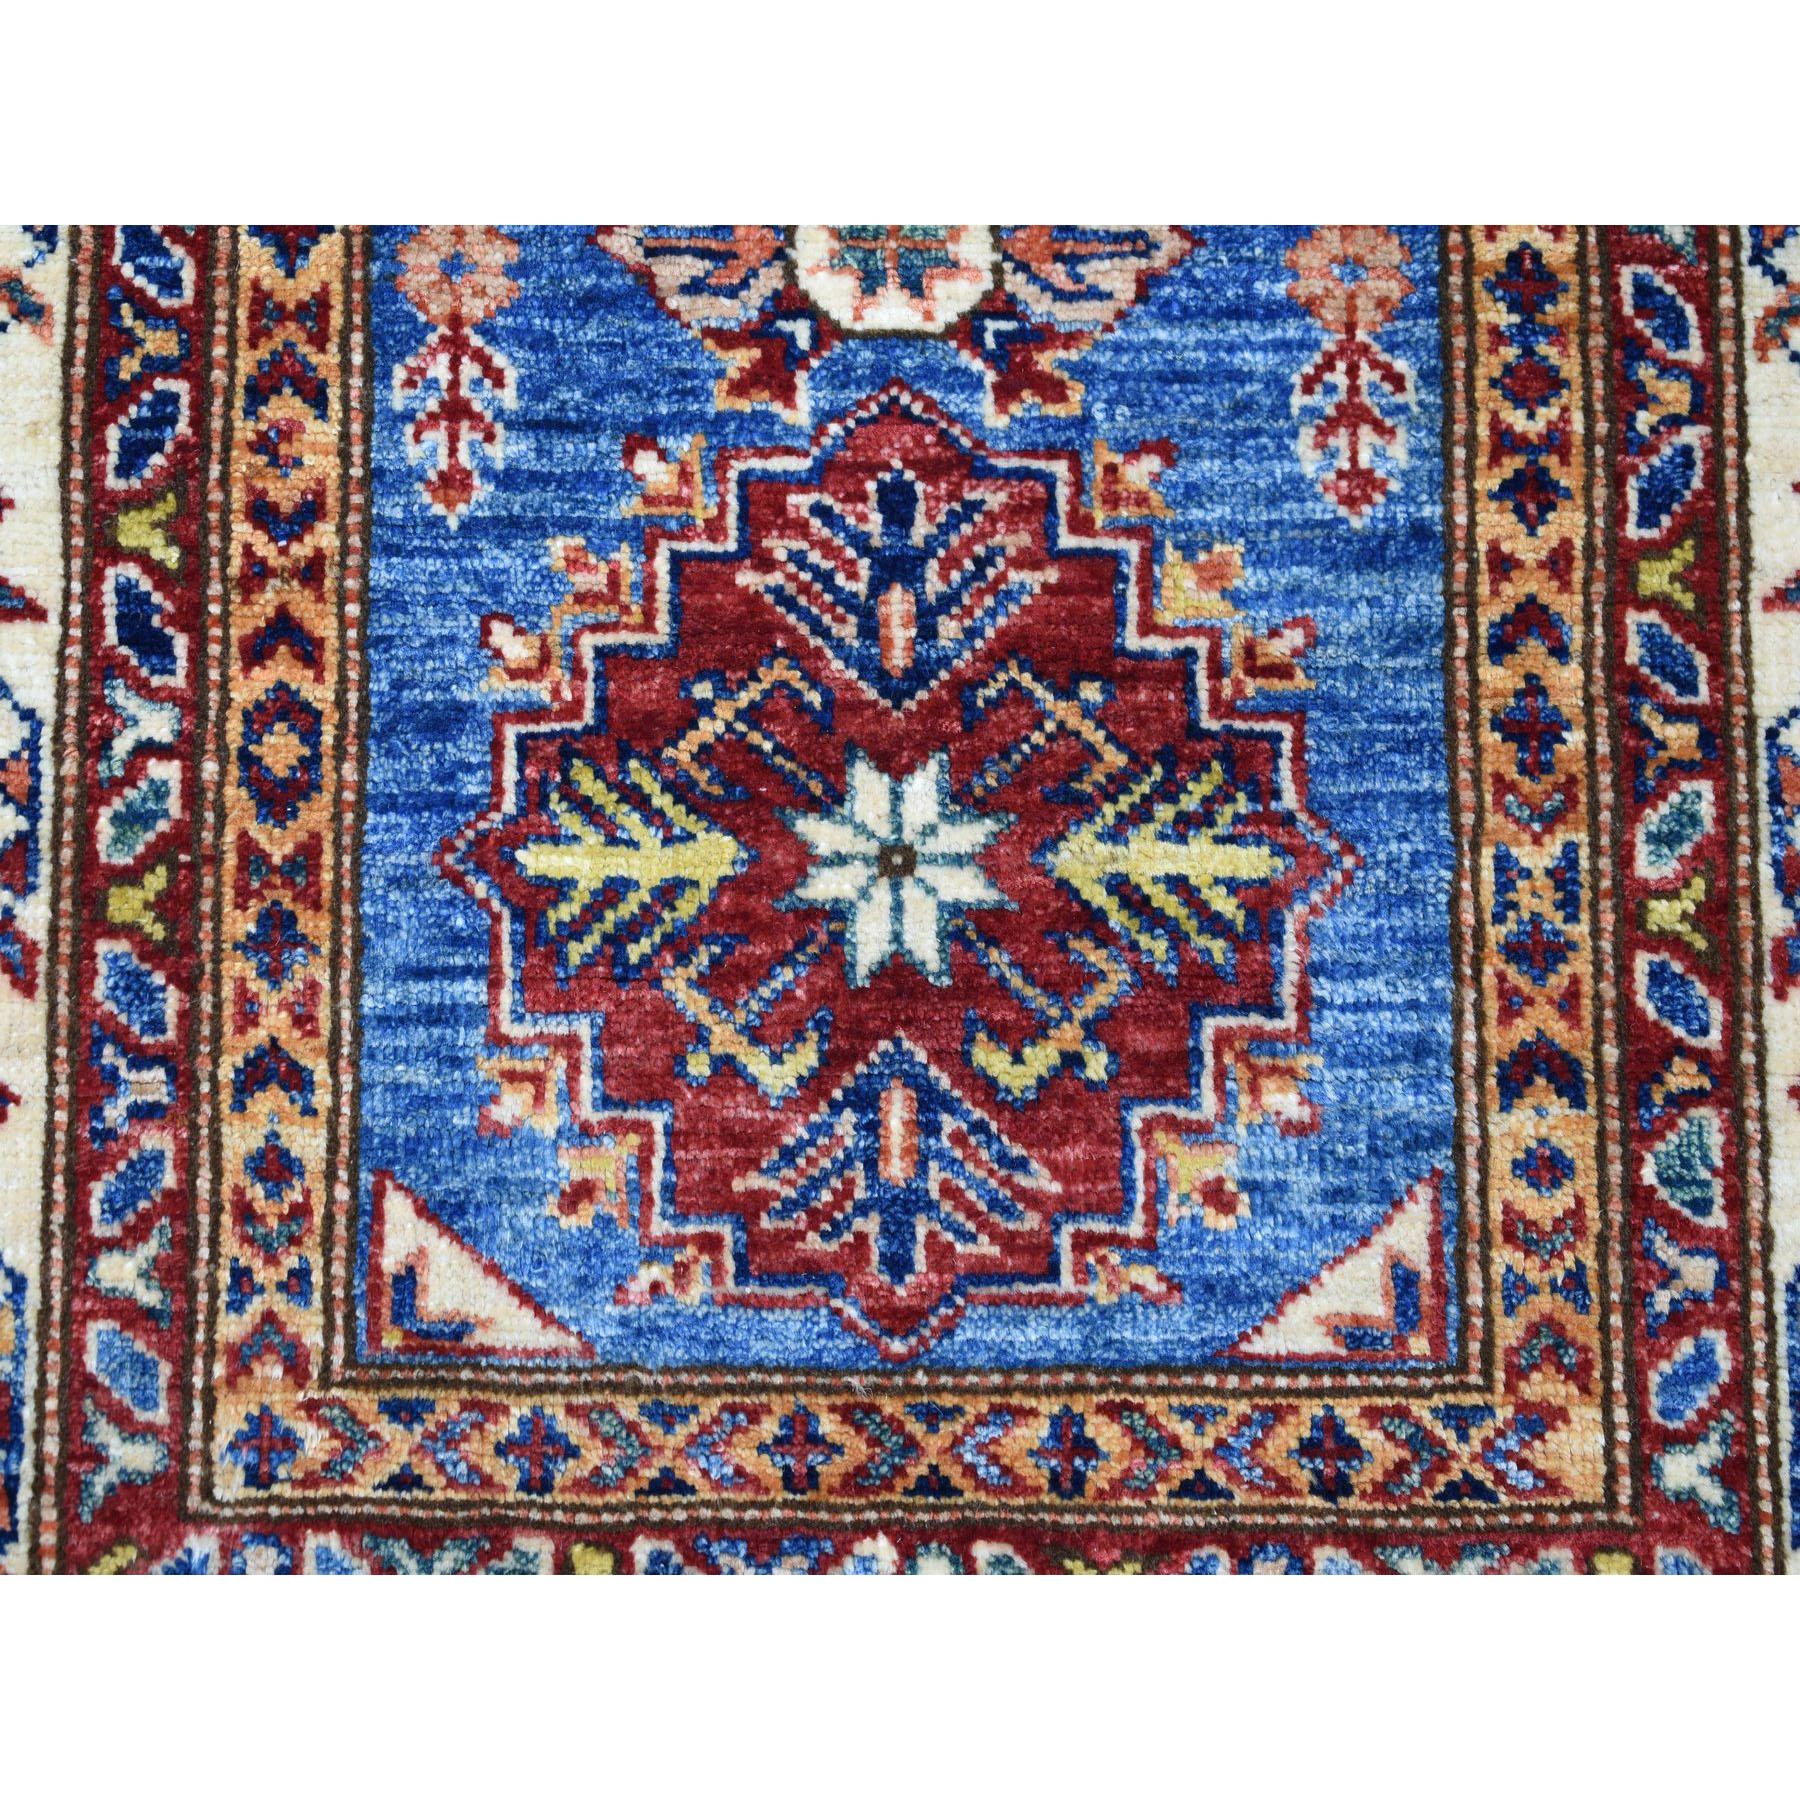 2-9 x4- Blue Super Kazak Geometric Design Pure Wool Hand-Knotted Oriental Rug